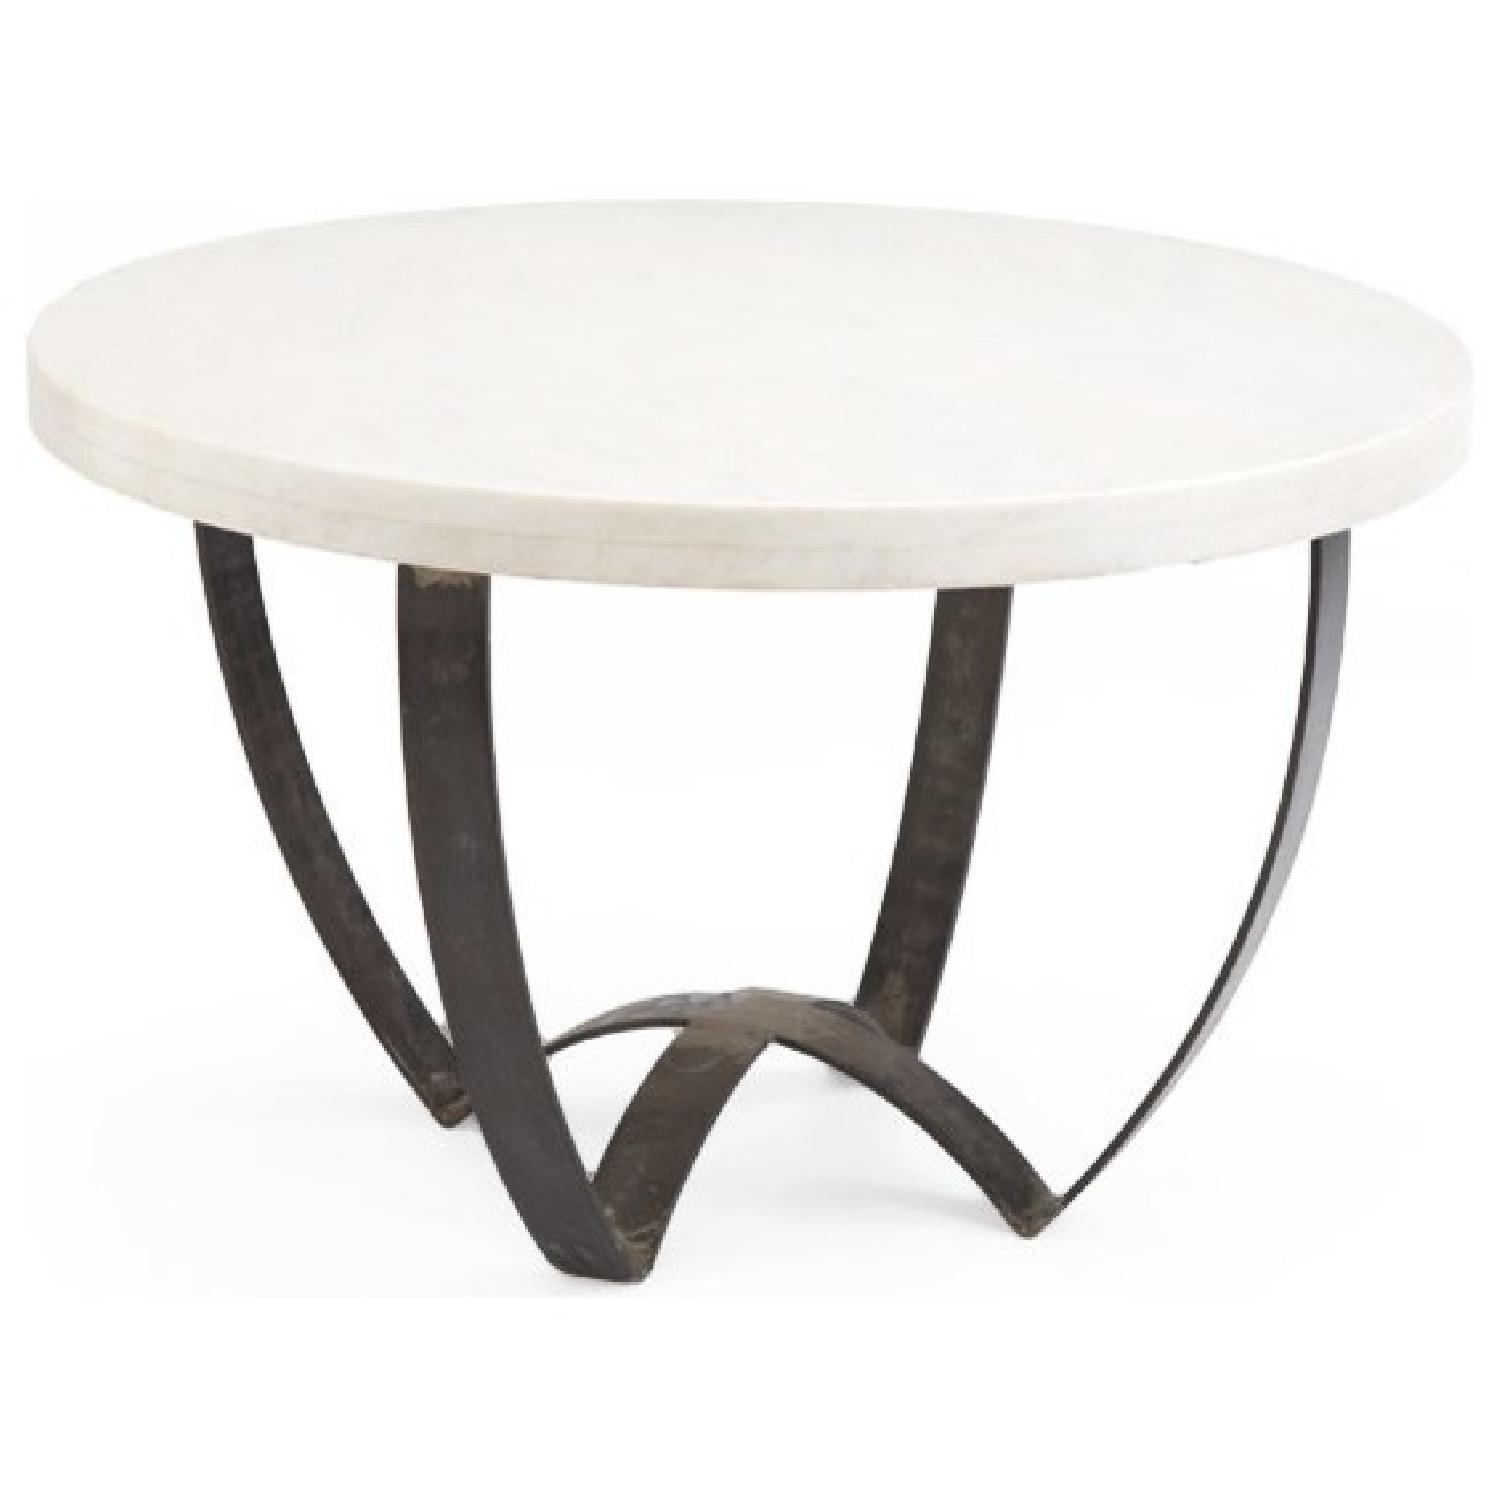 Marble Top Coffee Table w/ Metal Base - image-1